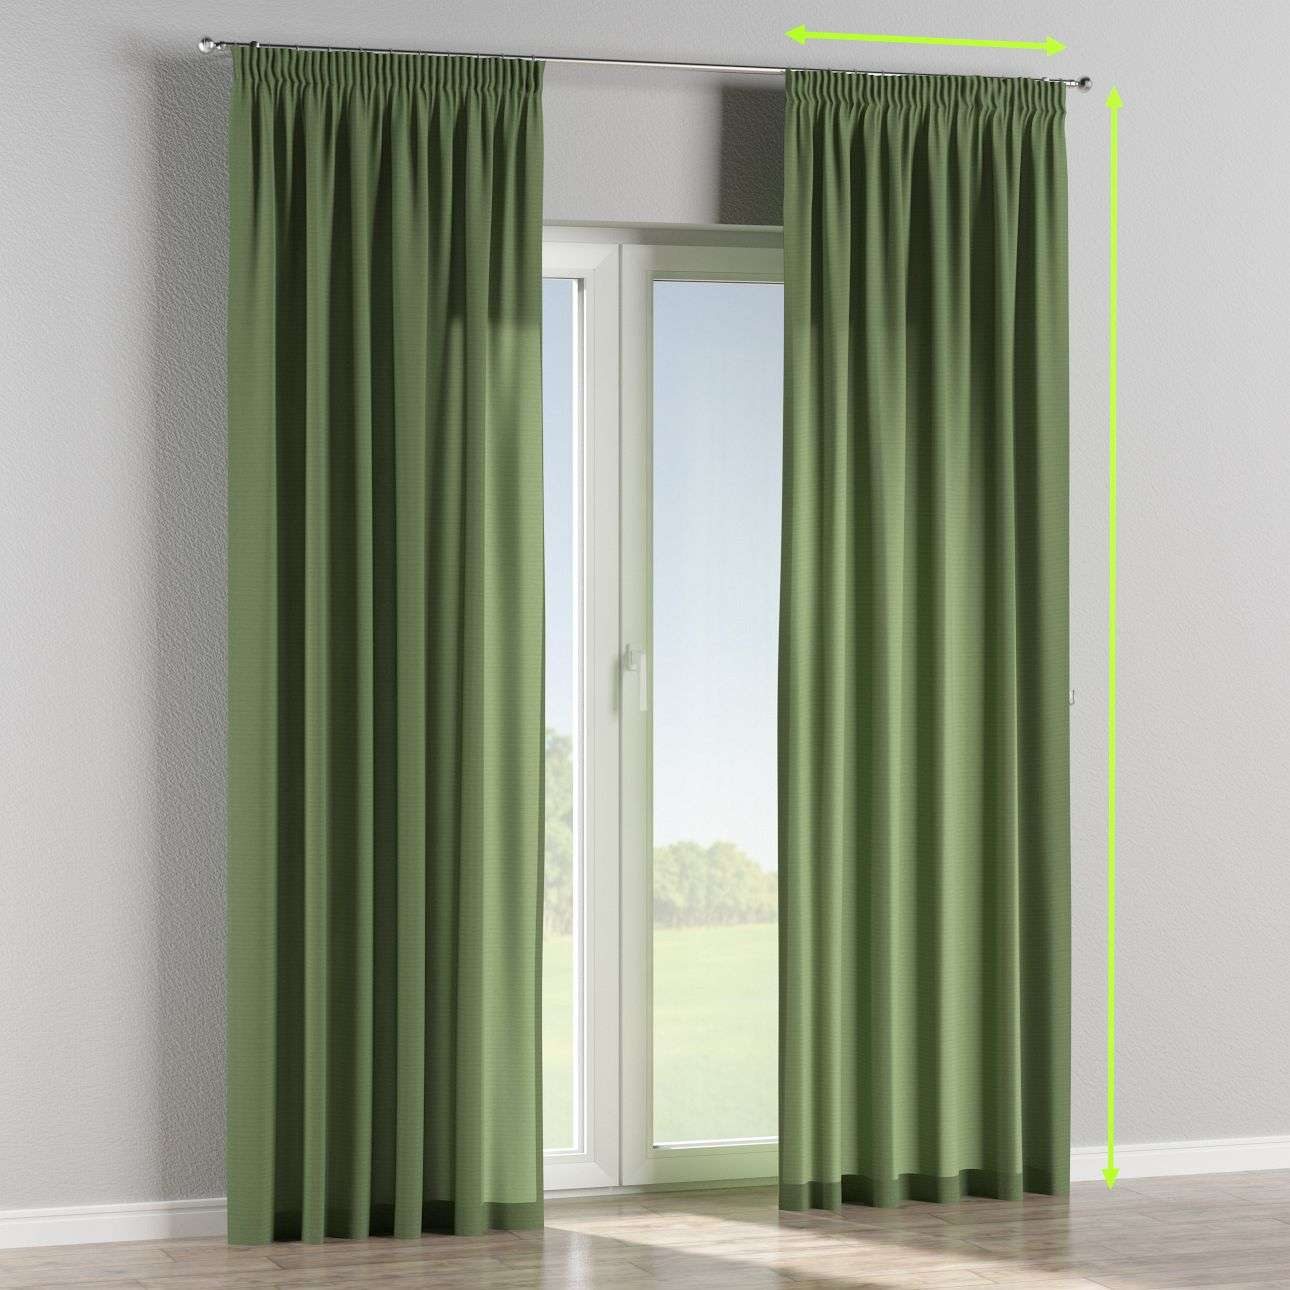 Pencil pleat curtains in collection Jupiter, fabric: 127-52